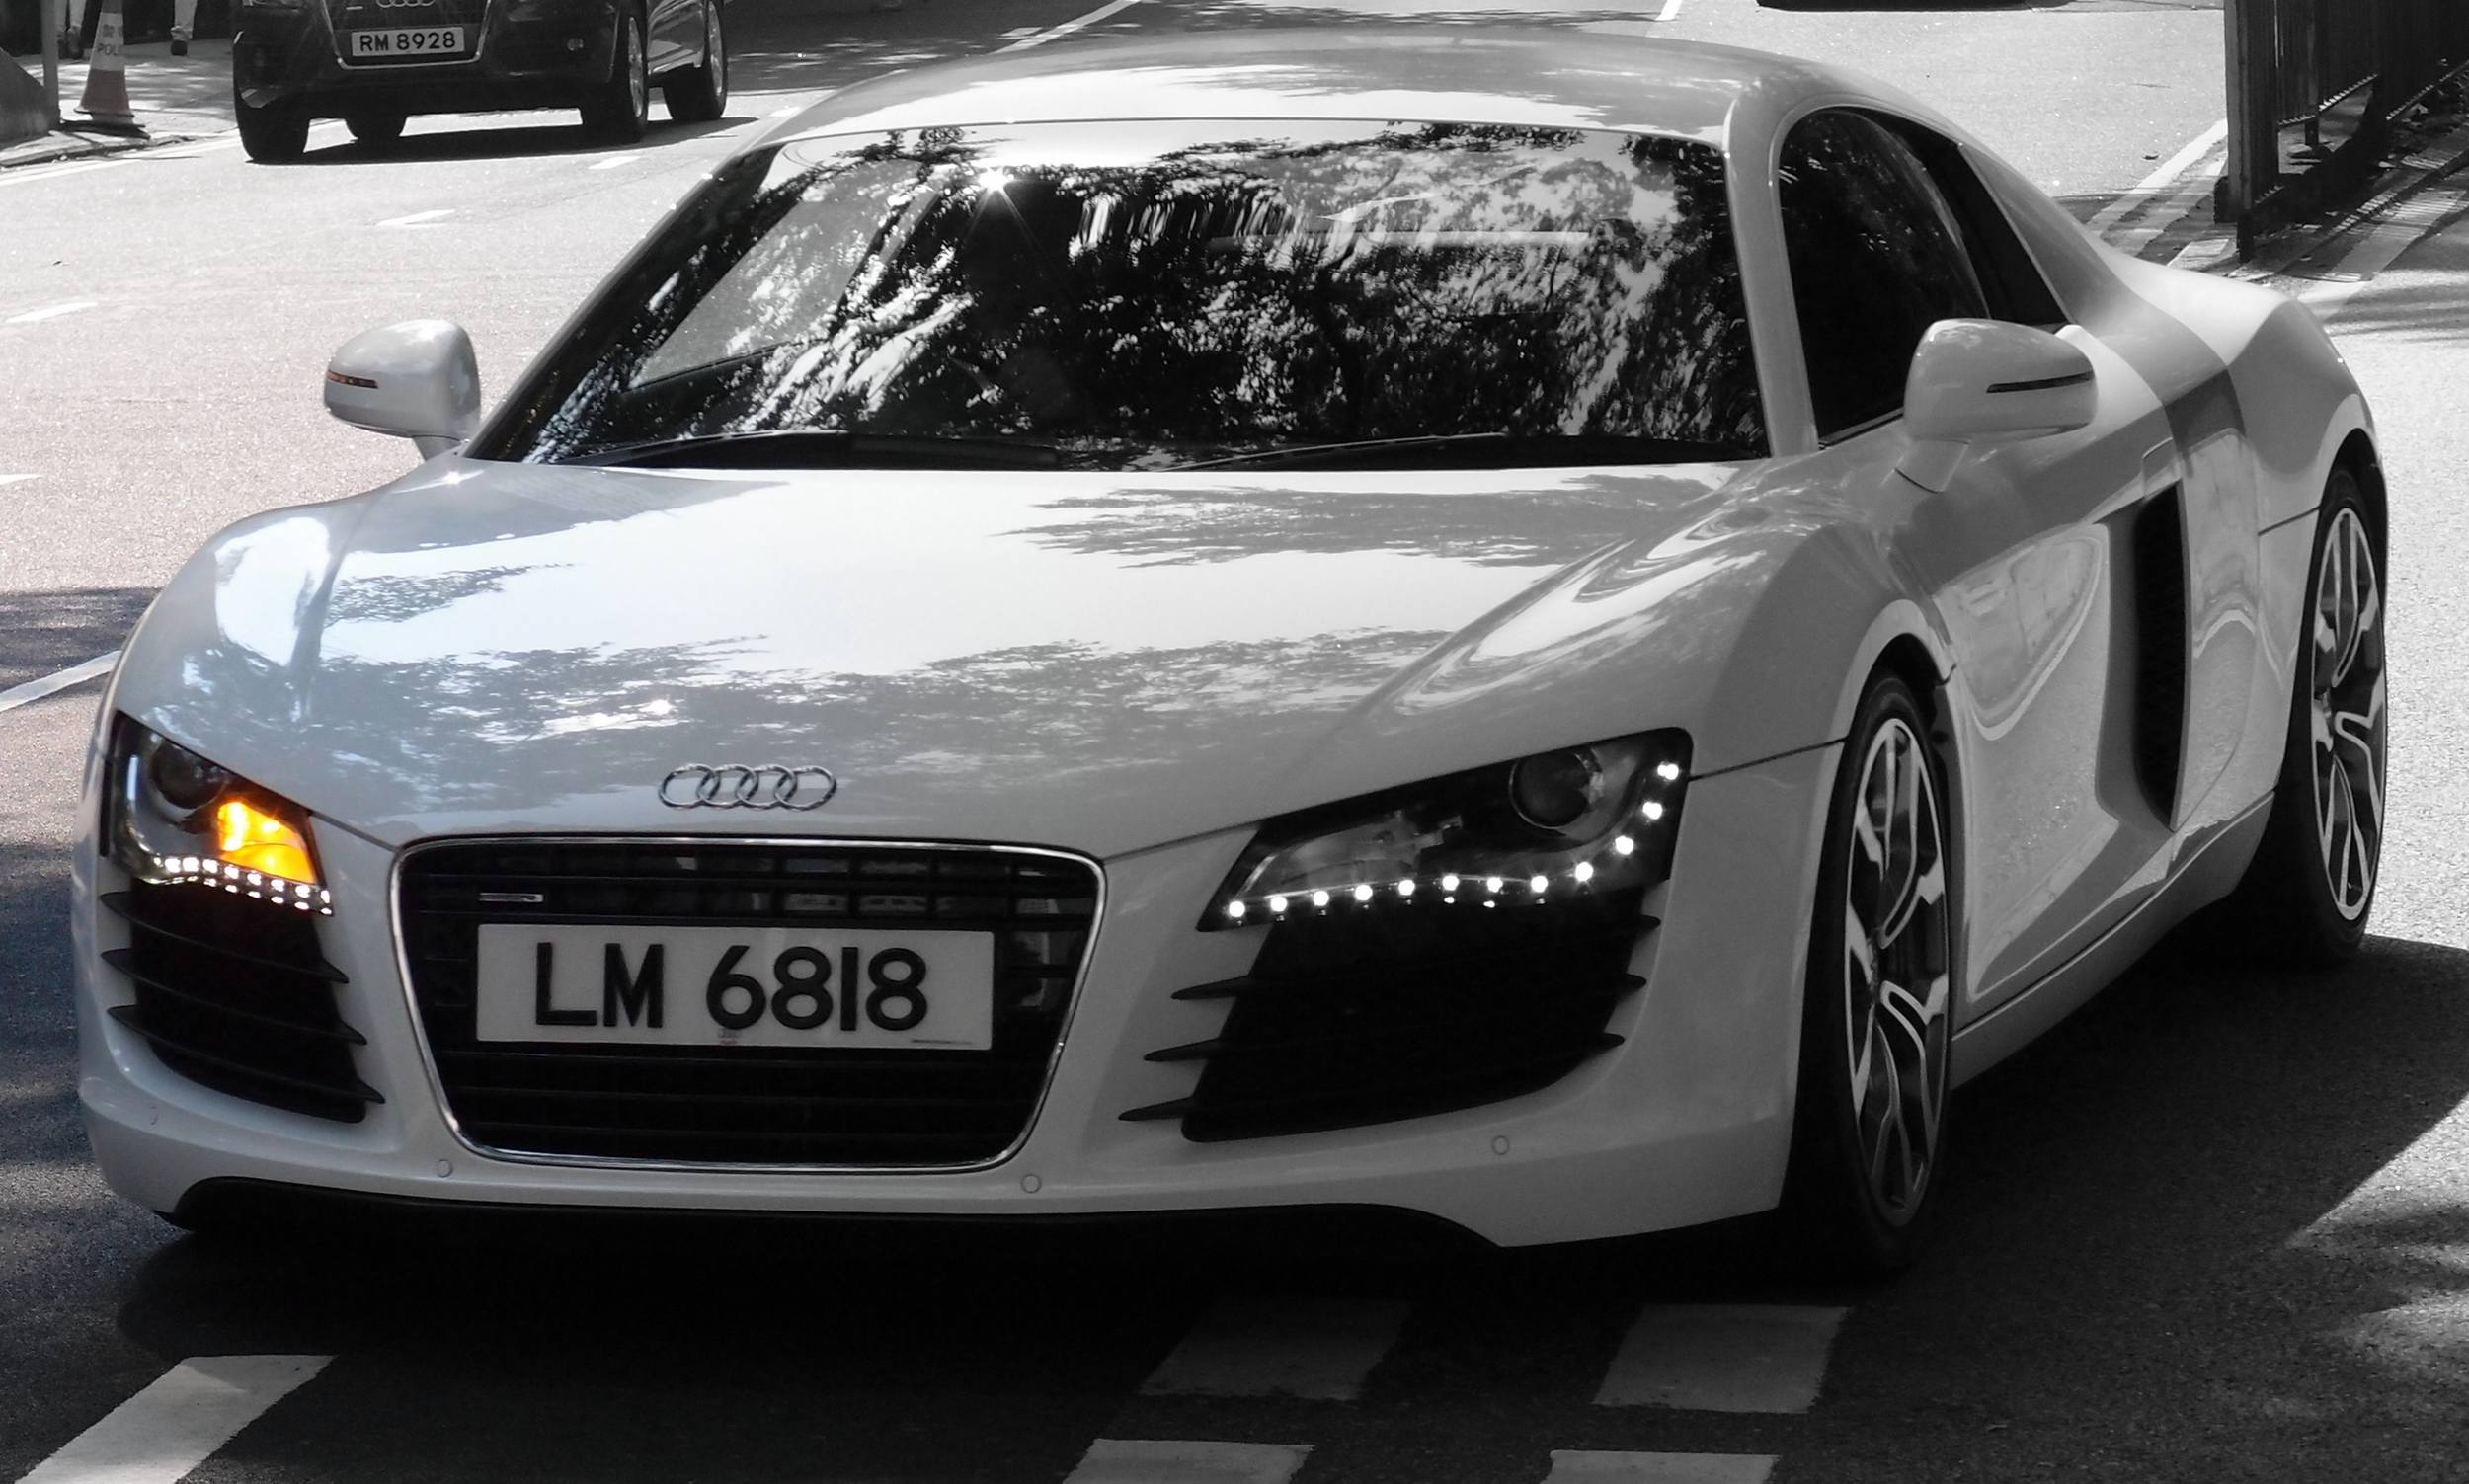 Oh my, a simply awesome Audi R8